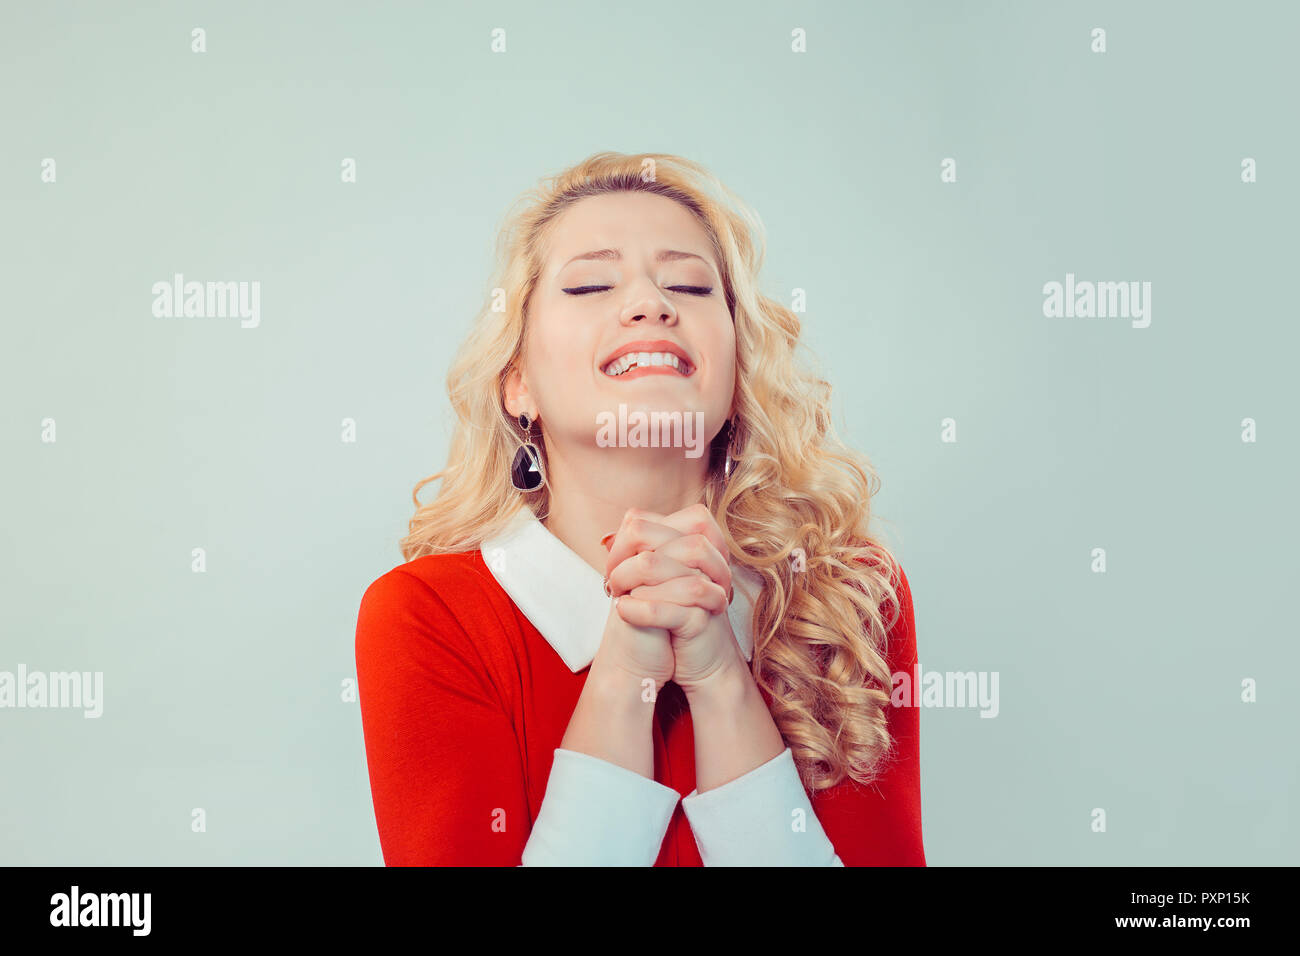 Beautiful woman pleading with hands together - Stock Image